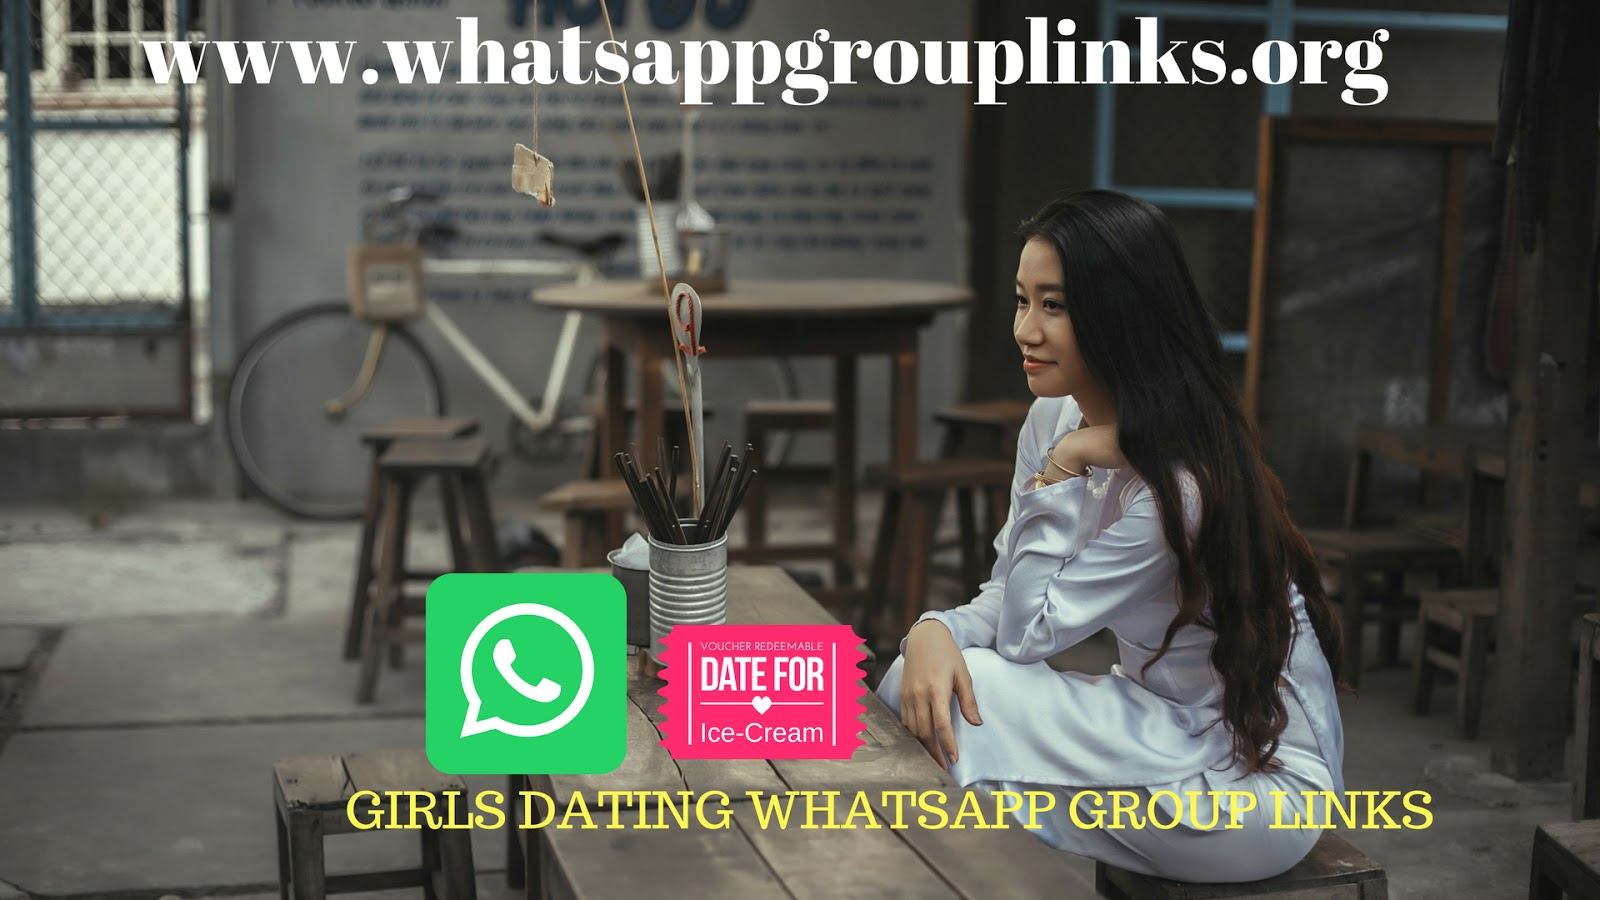 JOIN GIRLS DATING WHATSAPP GROUP LINKS LIST - Whatsapp Group Links